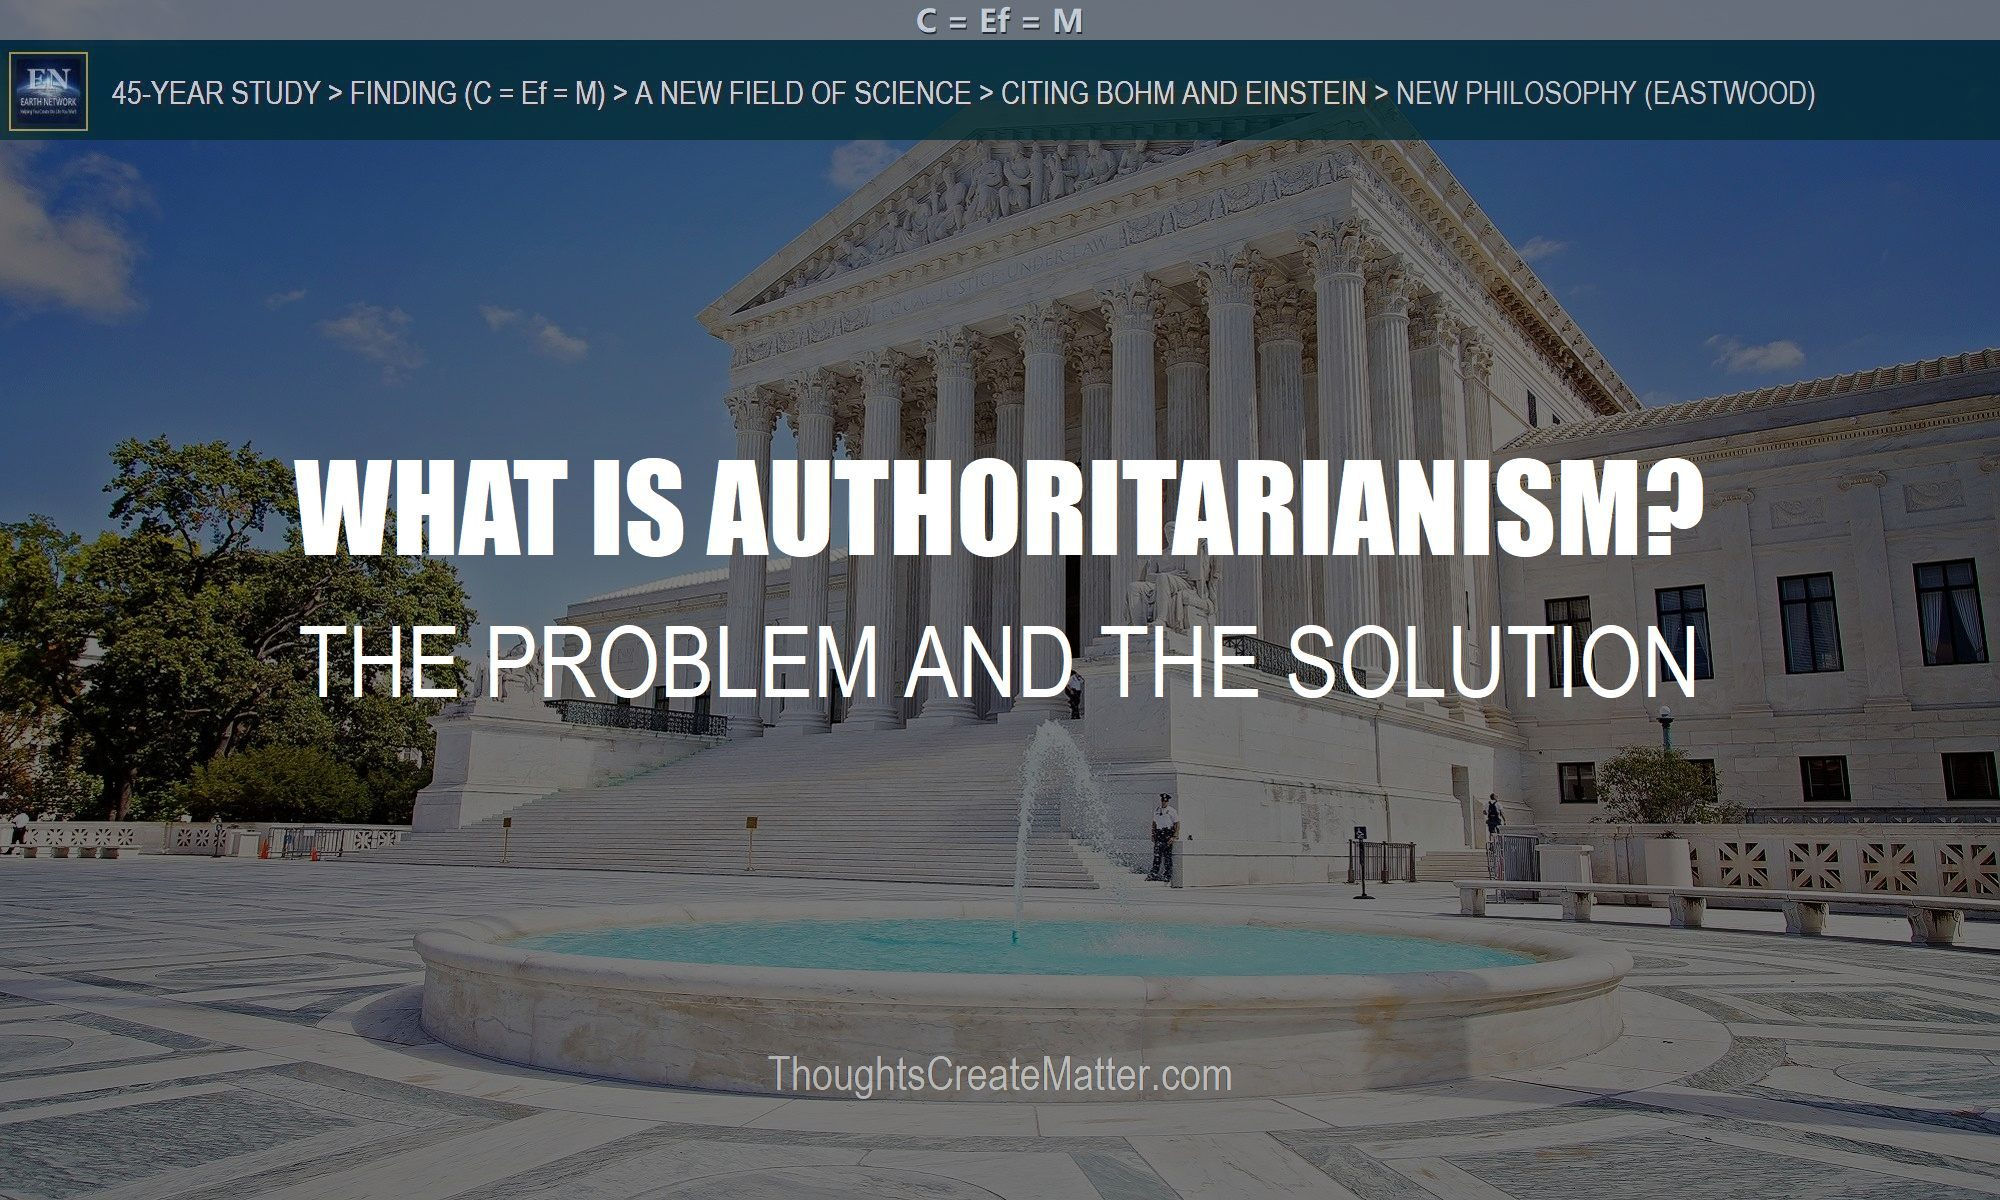 Supreme court depicts authoritarianism-what-is-an-authoritarian-bully-psychology-degrading-human-nature-people